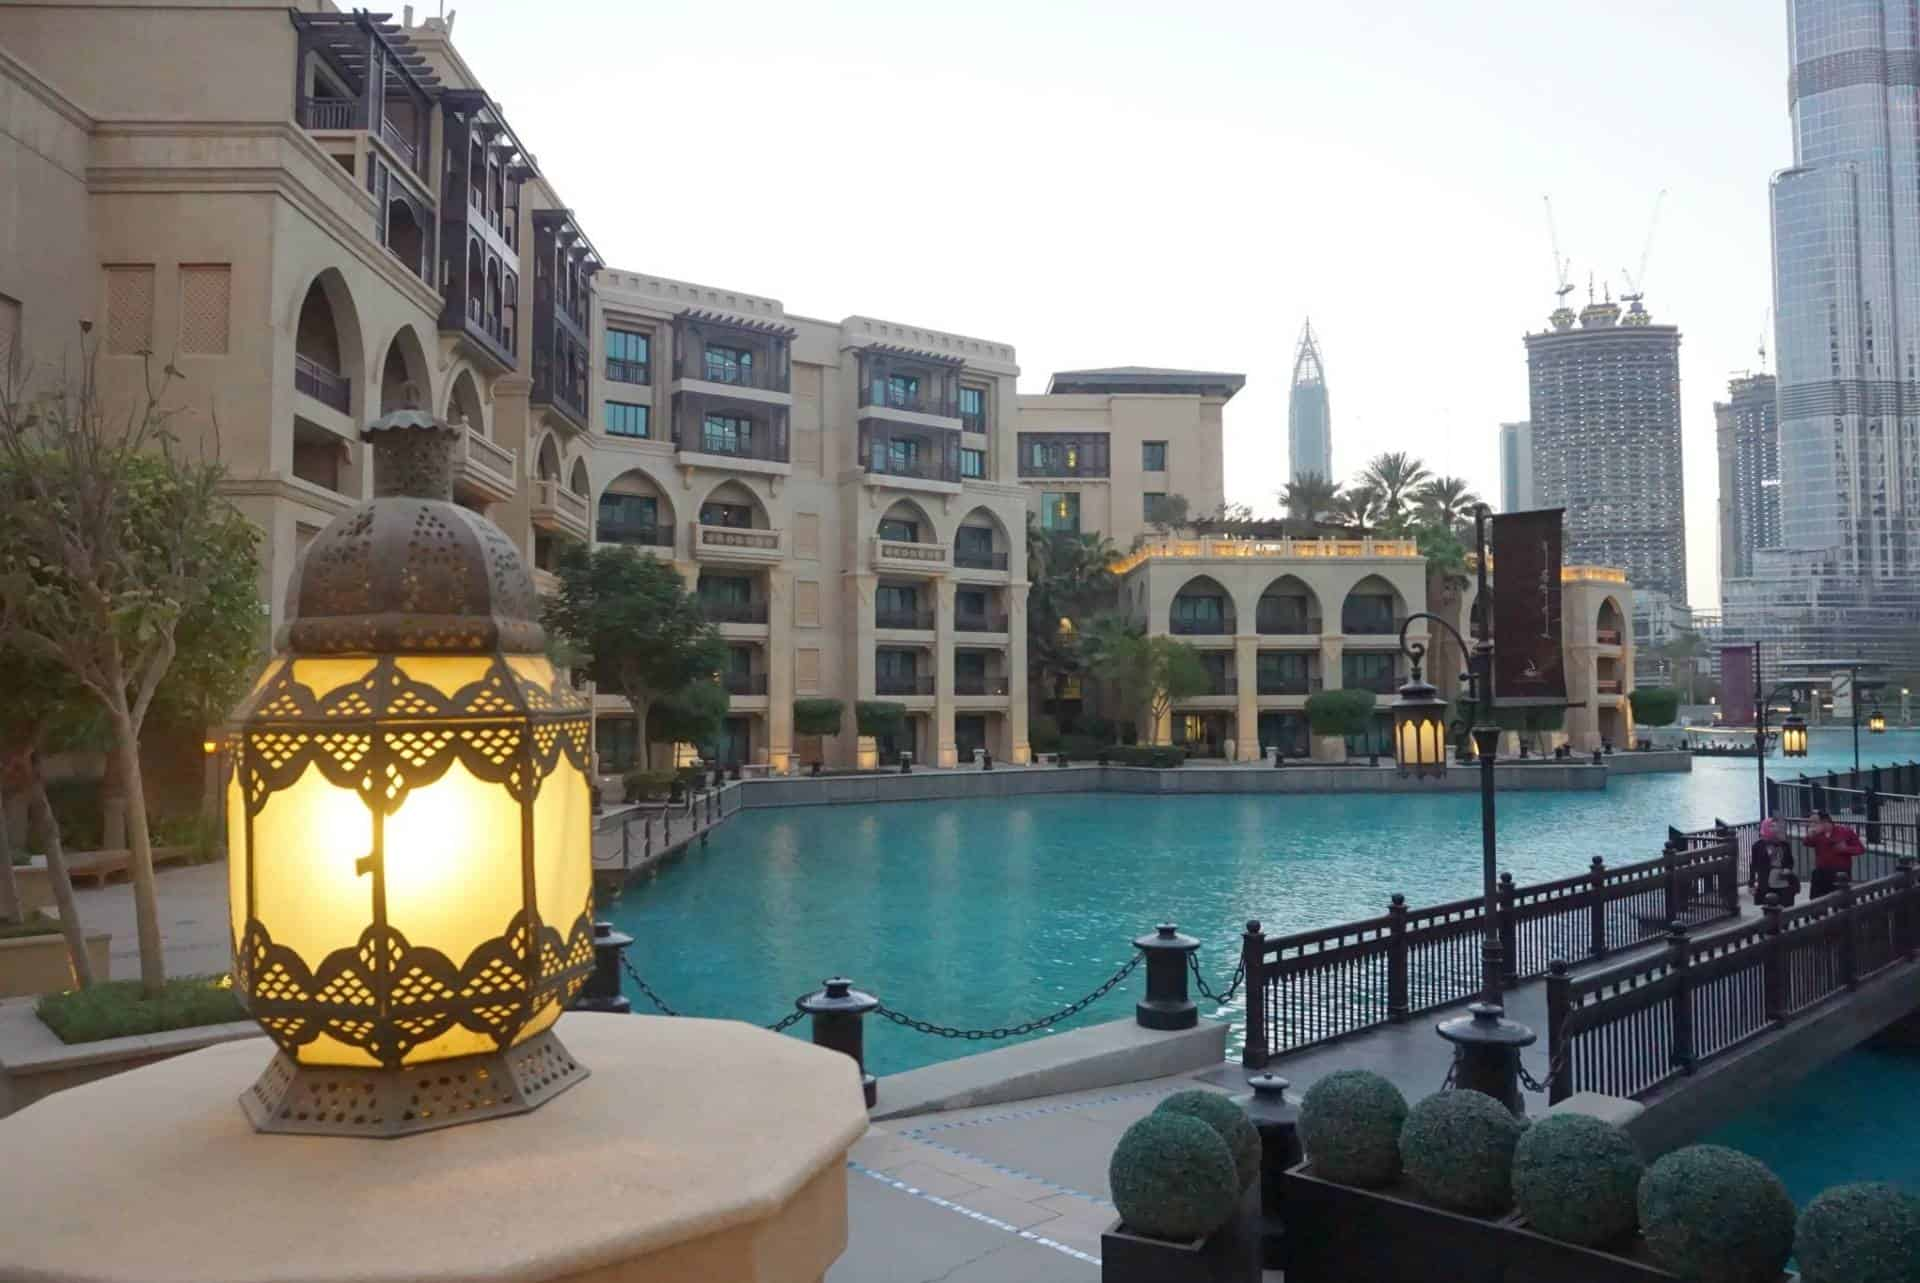 My Sunday Photo, The Palace, Down Town Dubai